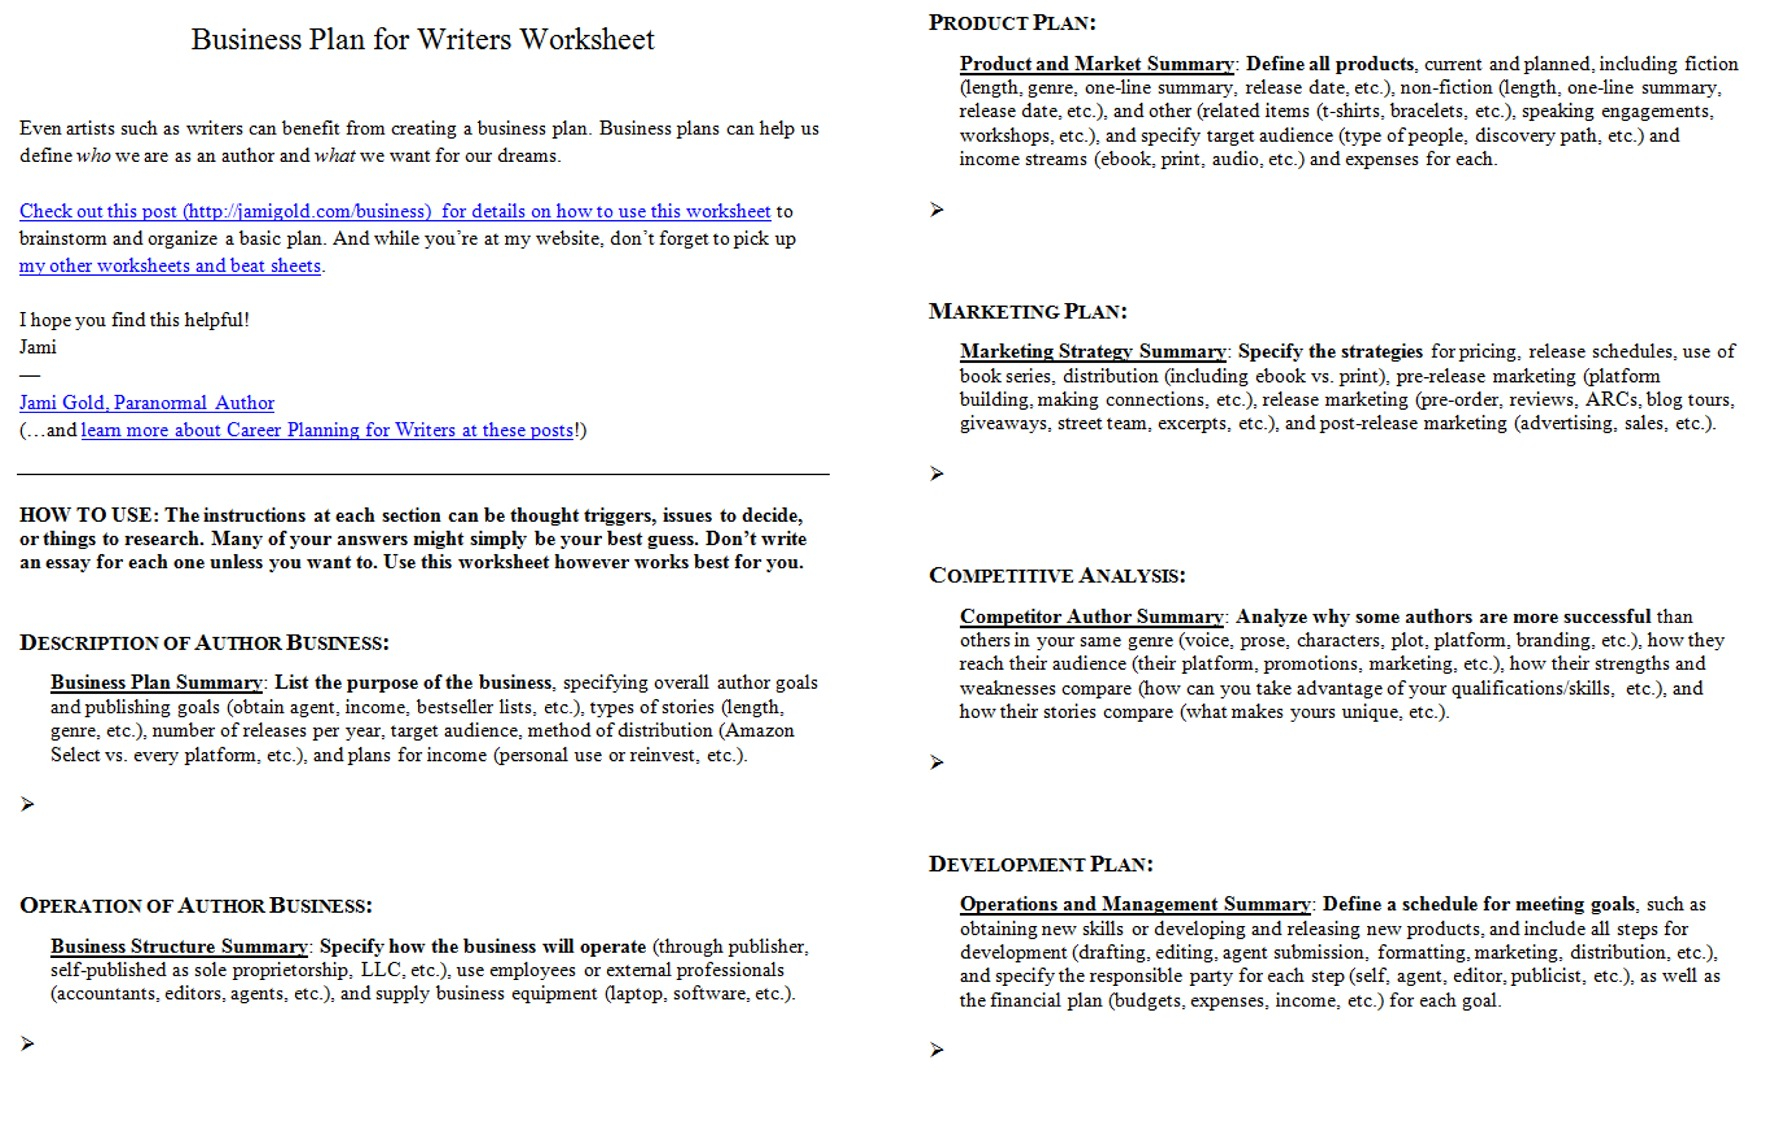 Weirdmailus  Wonderful Worksheets For Writers  Jami Gold Paranormal Author With Fetching Screen Shot Of Both Pages Of The Business Plan For Writers Worksheet With Agreeable Algebra Balance Scales Worksheets Also Grammar Prepositions Worksheets In Addition Synonyms Free Worksheets And Measuring Distance On A Map Worksheet As Well As Maths Volume Worksheets Additionally Th Grade Preposition Worksheets From Jamigoldcom With Weirdmailus  Fetching Worksheets For Writers  Jami Gold Paranormal Author With Agreeable Screen Shot Of Both Pages Of The Business Plan For Writers Worksheet And Wonderful Algebra Balance Scales Worksheets Also Grammar Prepositions Worksheets In Addition Synonyms Free Worksheets From Jamigoldcom